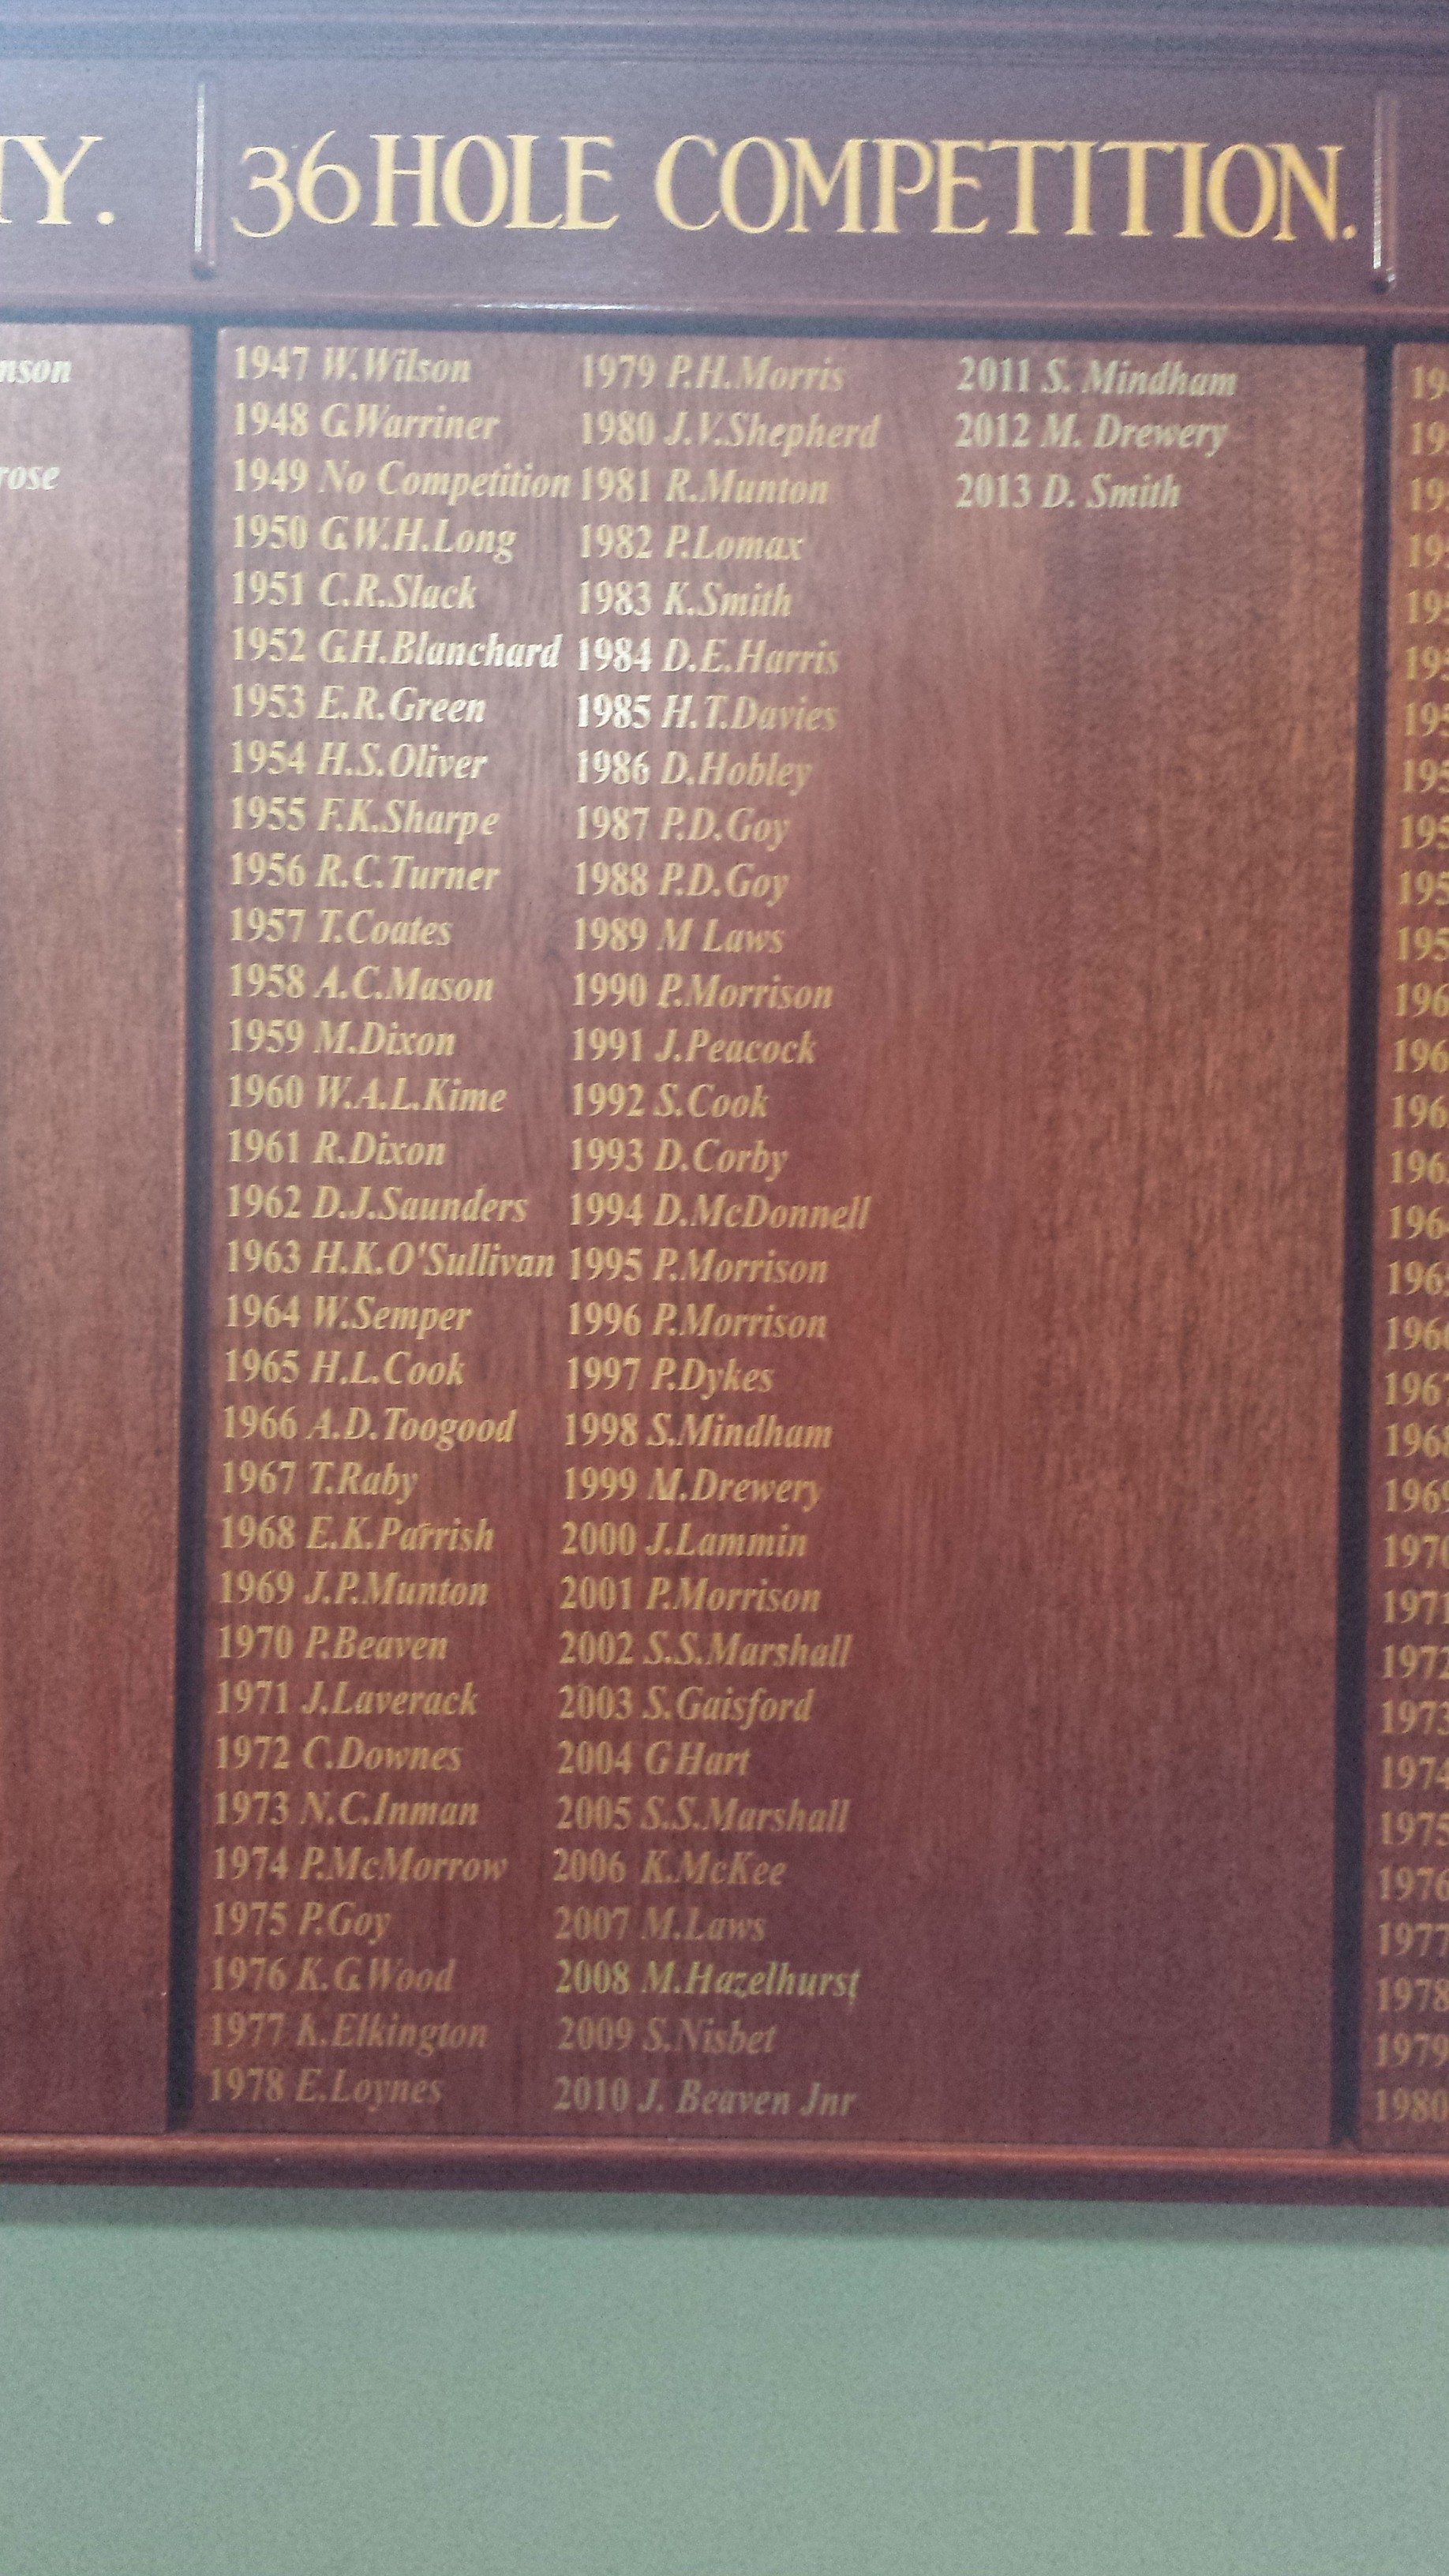 36 hole competition honours board ay carholme golf club in lincoln